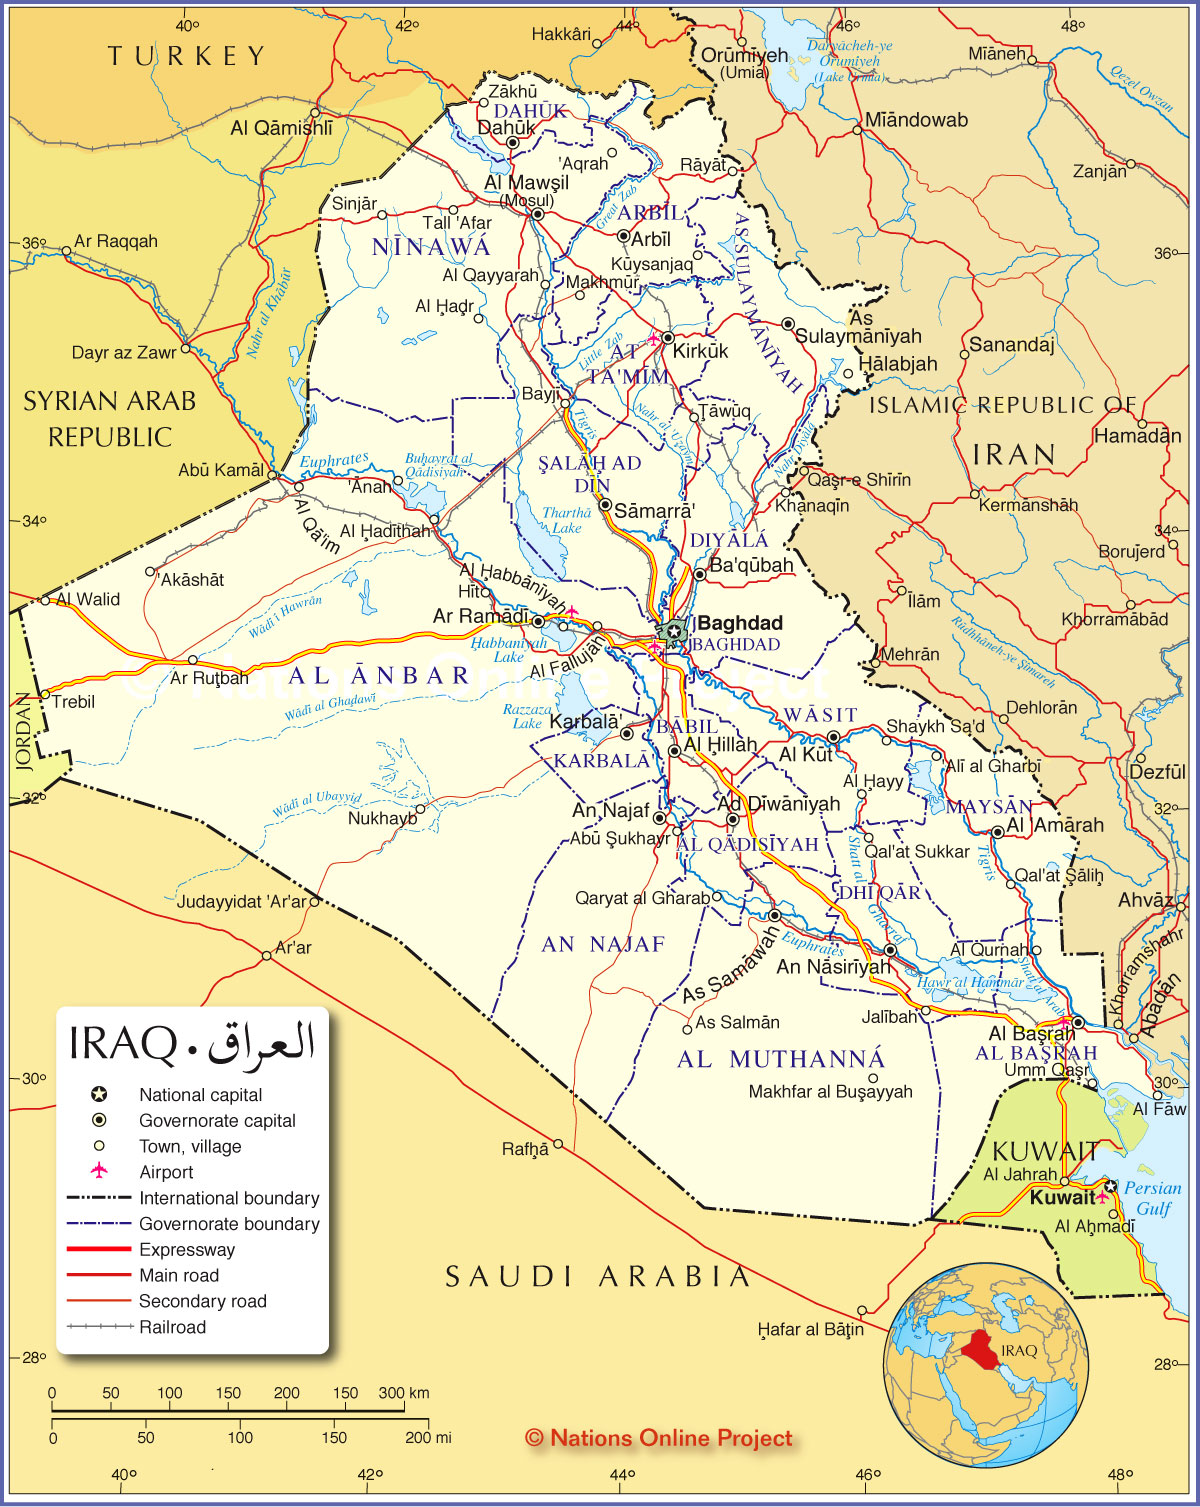 Political Map of Iraq - Nations Online Project MAP OF IRAQ